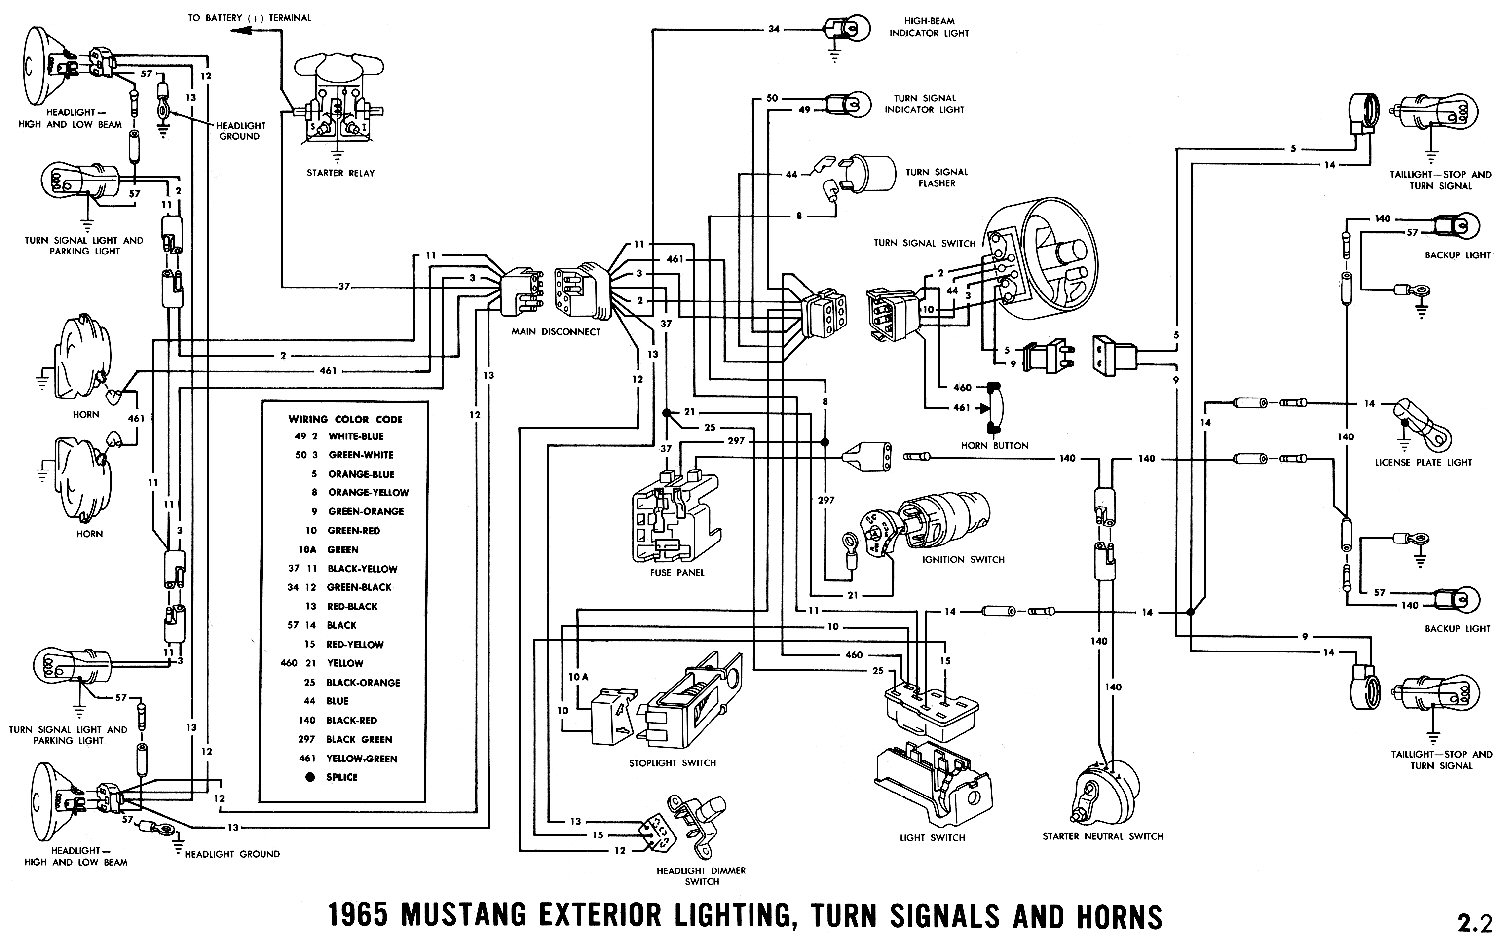 69 Mustang Wiring Diagram : 25 Wiring Diagram Images